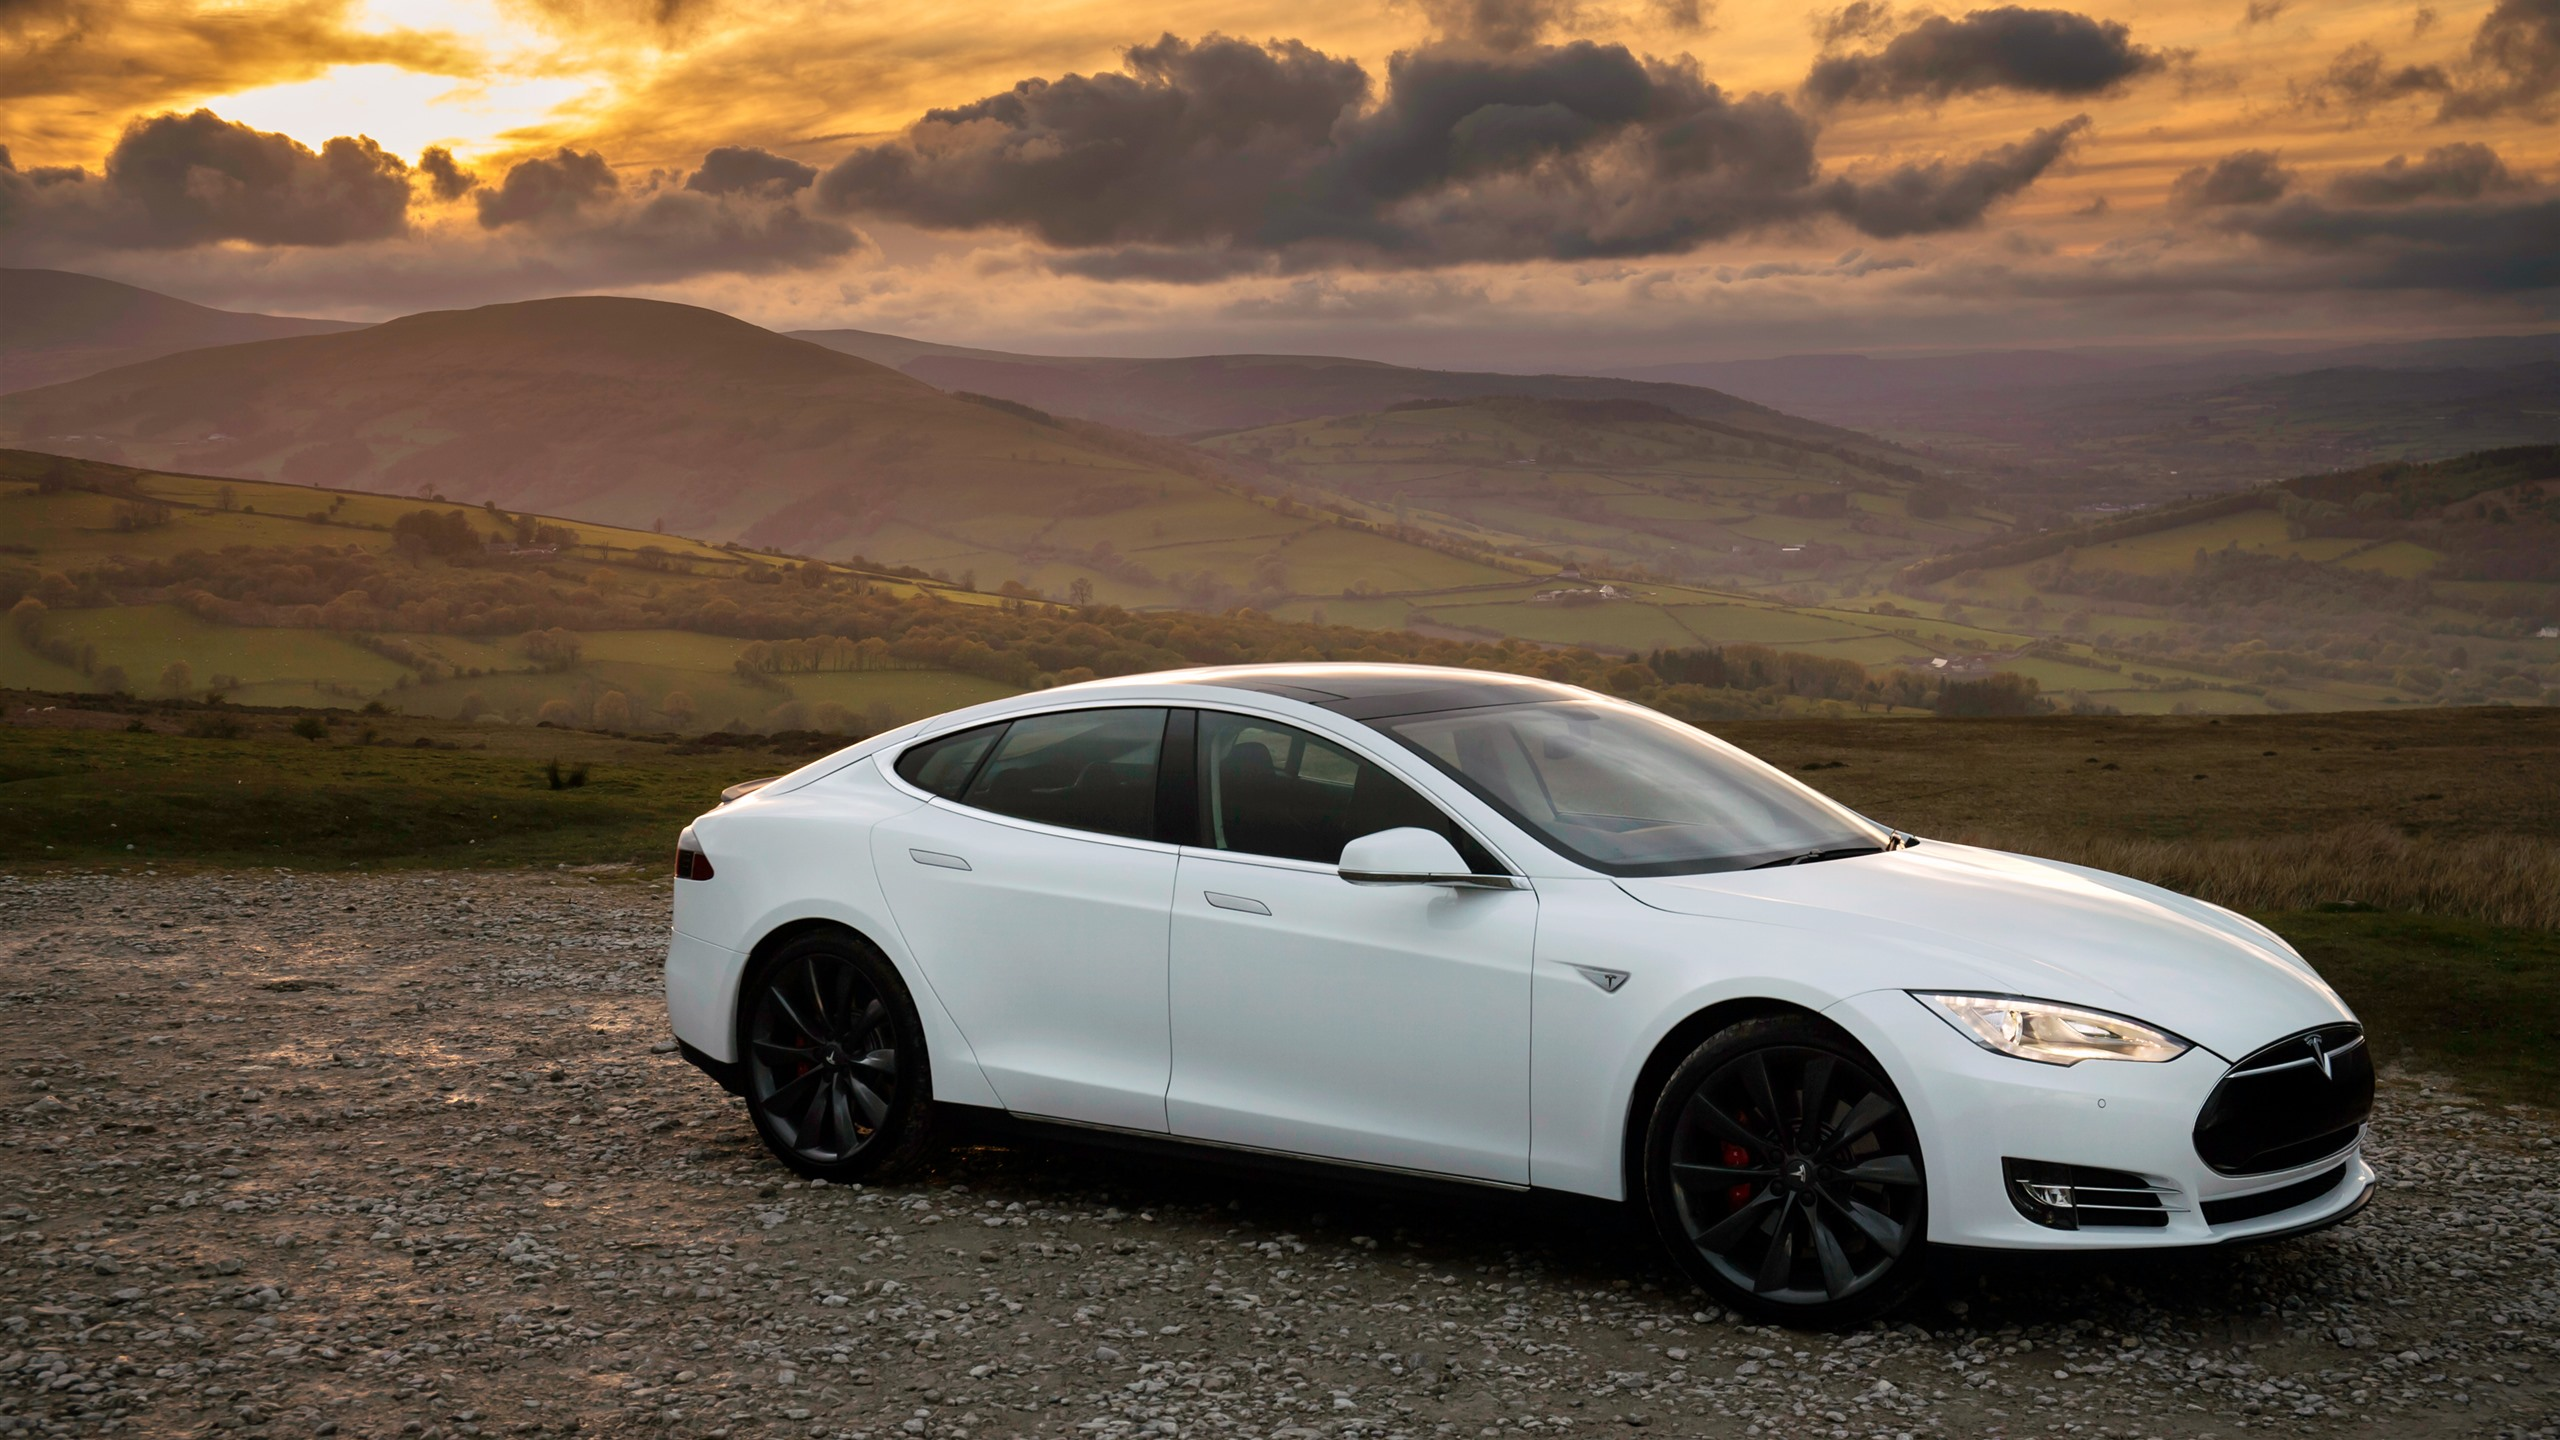 Tesla Model S White Car Side View 1242x2688 Iphone Xs Max